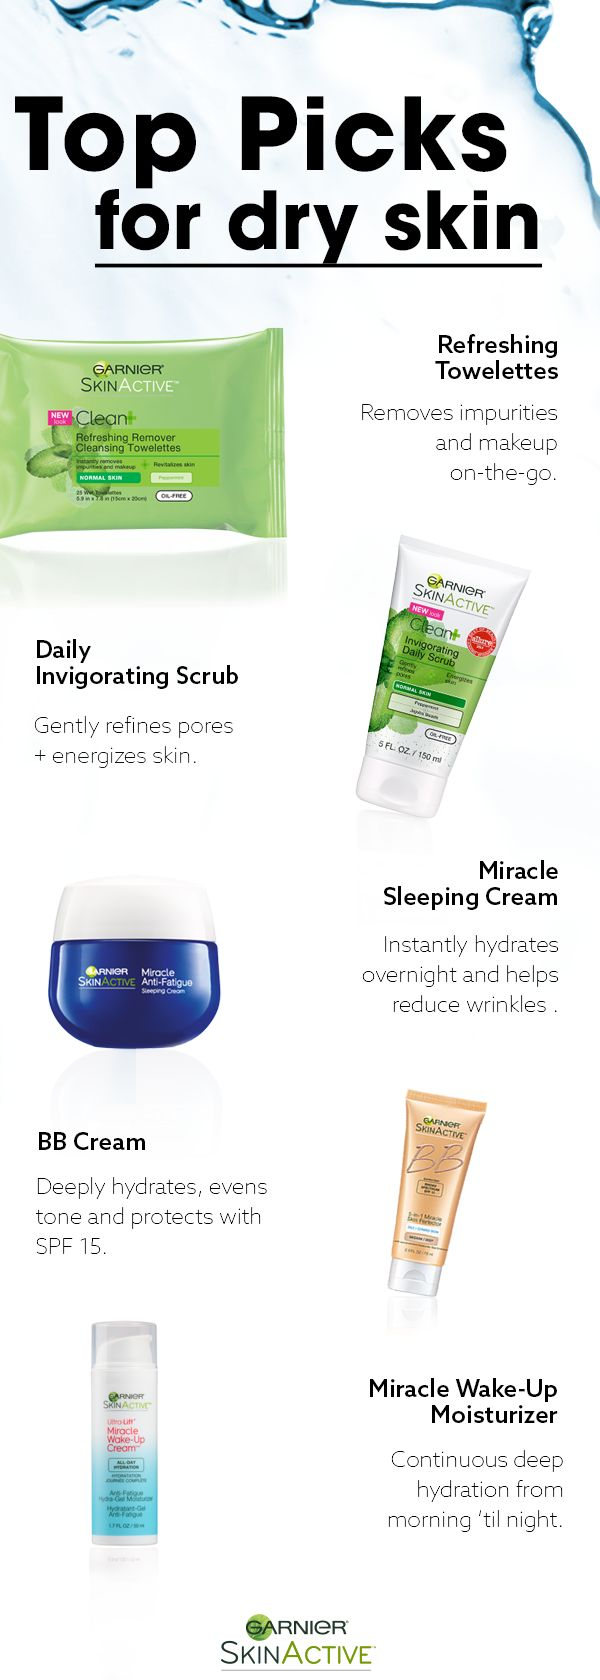 Dry skin has specific needs. To look and feel its best, dry skin needs deeply hydrating cleansers and moisturizers. Discover our top picks of Garnier SkinActive products to give you nourished, healthy-looking skin every day.